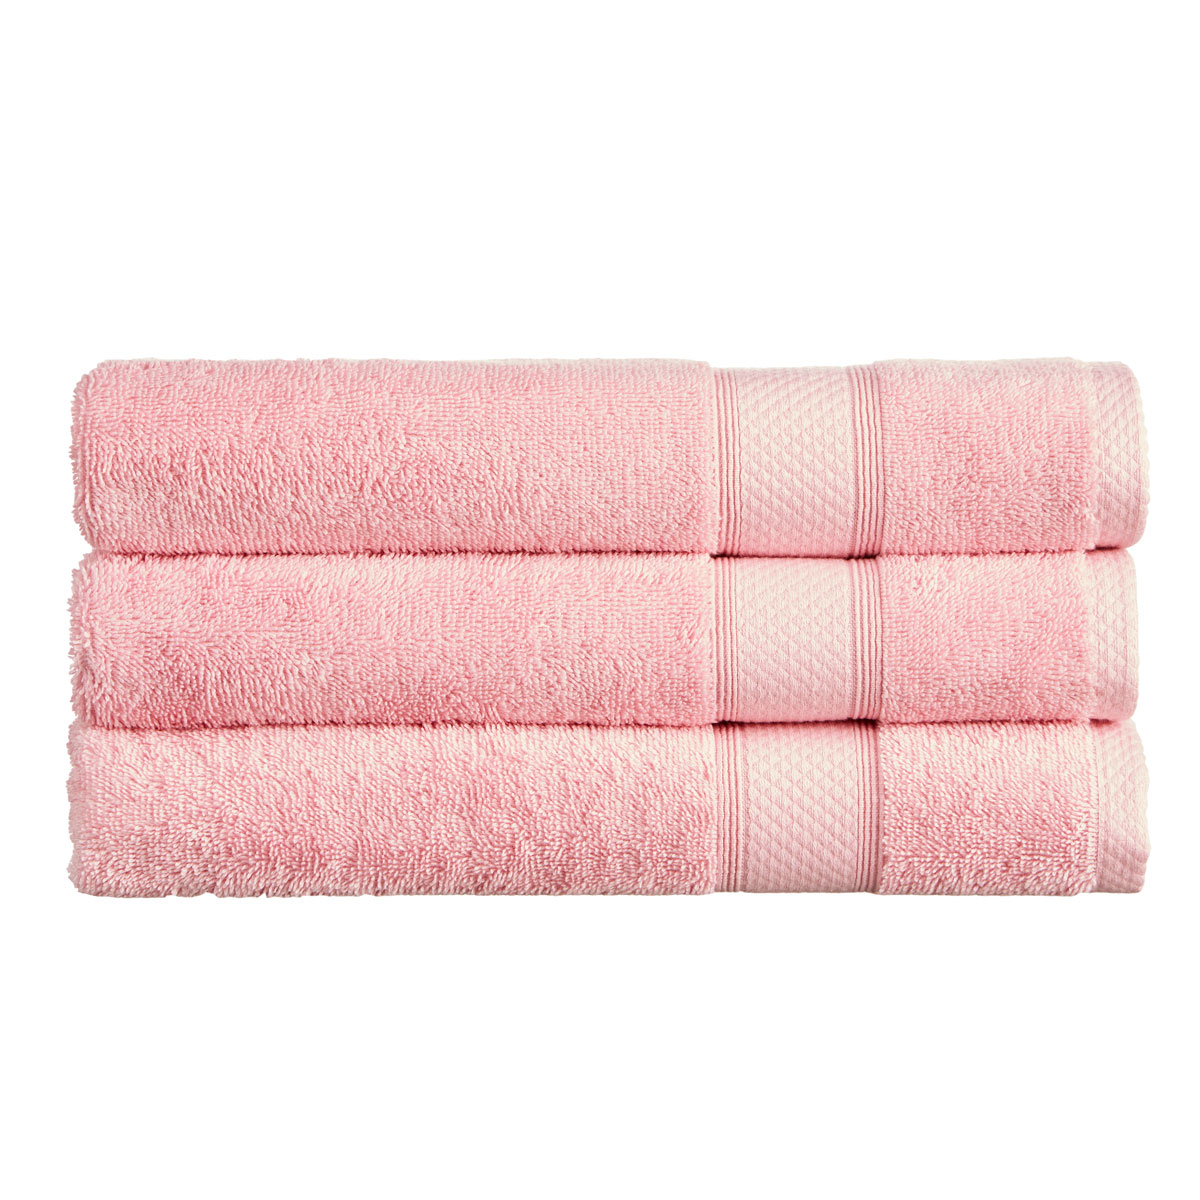 An image of Luxury Cotton Rialto Face Cloth in Blossom (Pink) by Christy